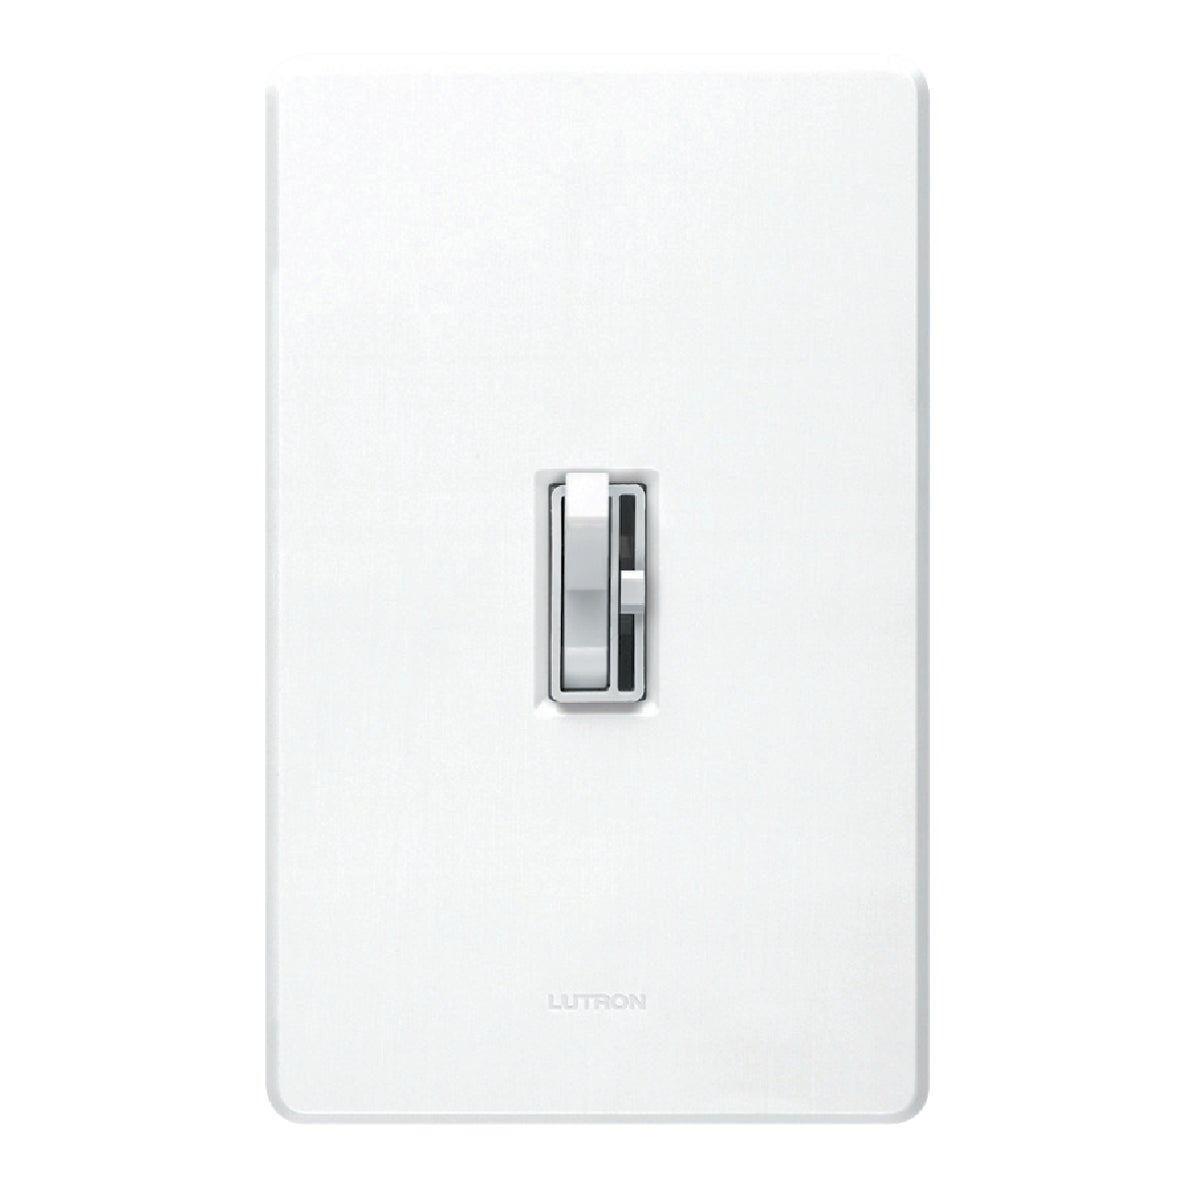 WHT 3-WAY SLIDE DIMMER - TG-603PH-WH by Lutron Elect Co Inc